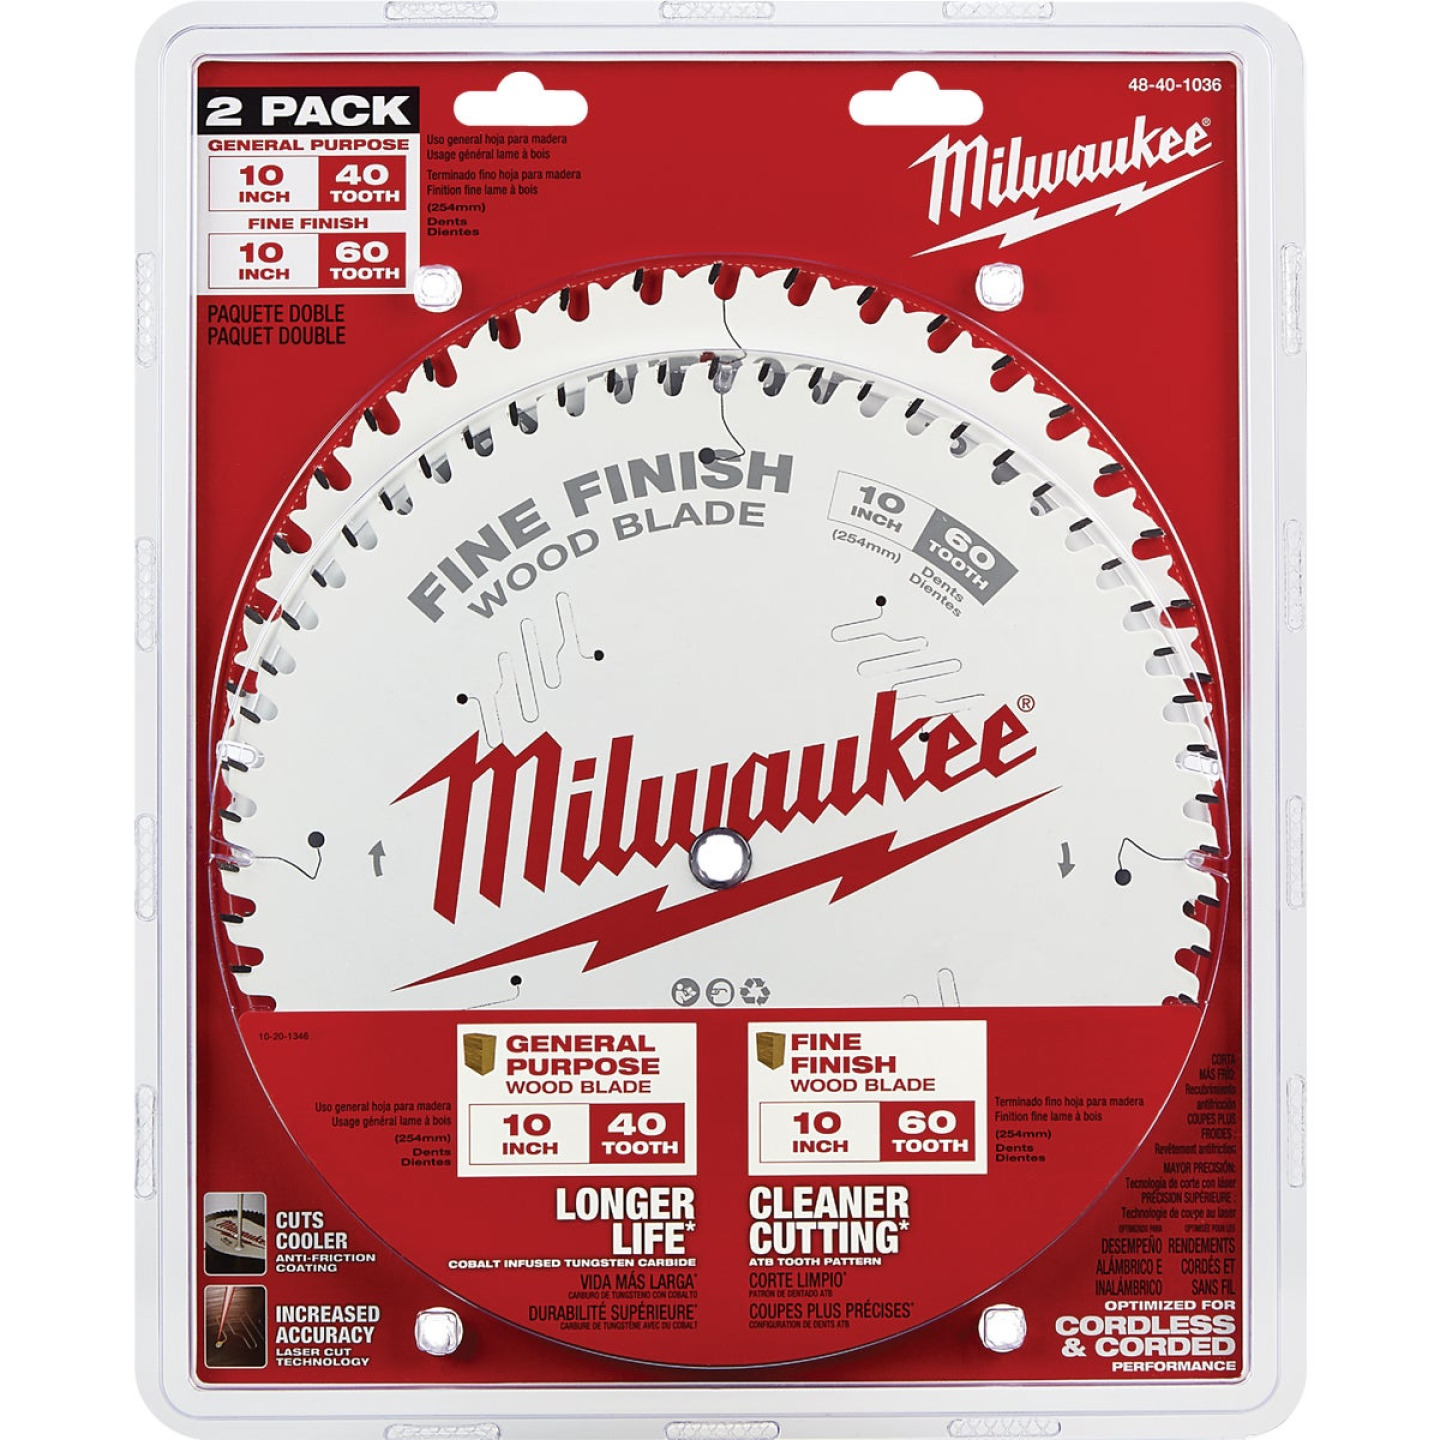 Milwaukee 10 In. 40-Tooth General Purpose & 60-Tooth Fine Finish Wood Circular Saw Blade (2-Pack) Image 2